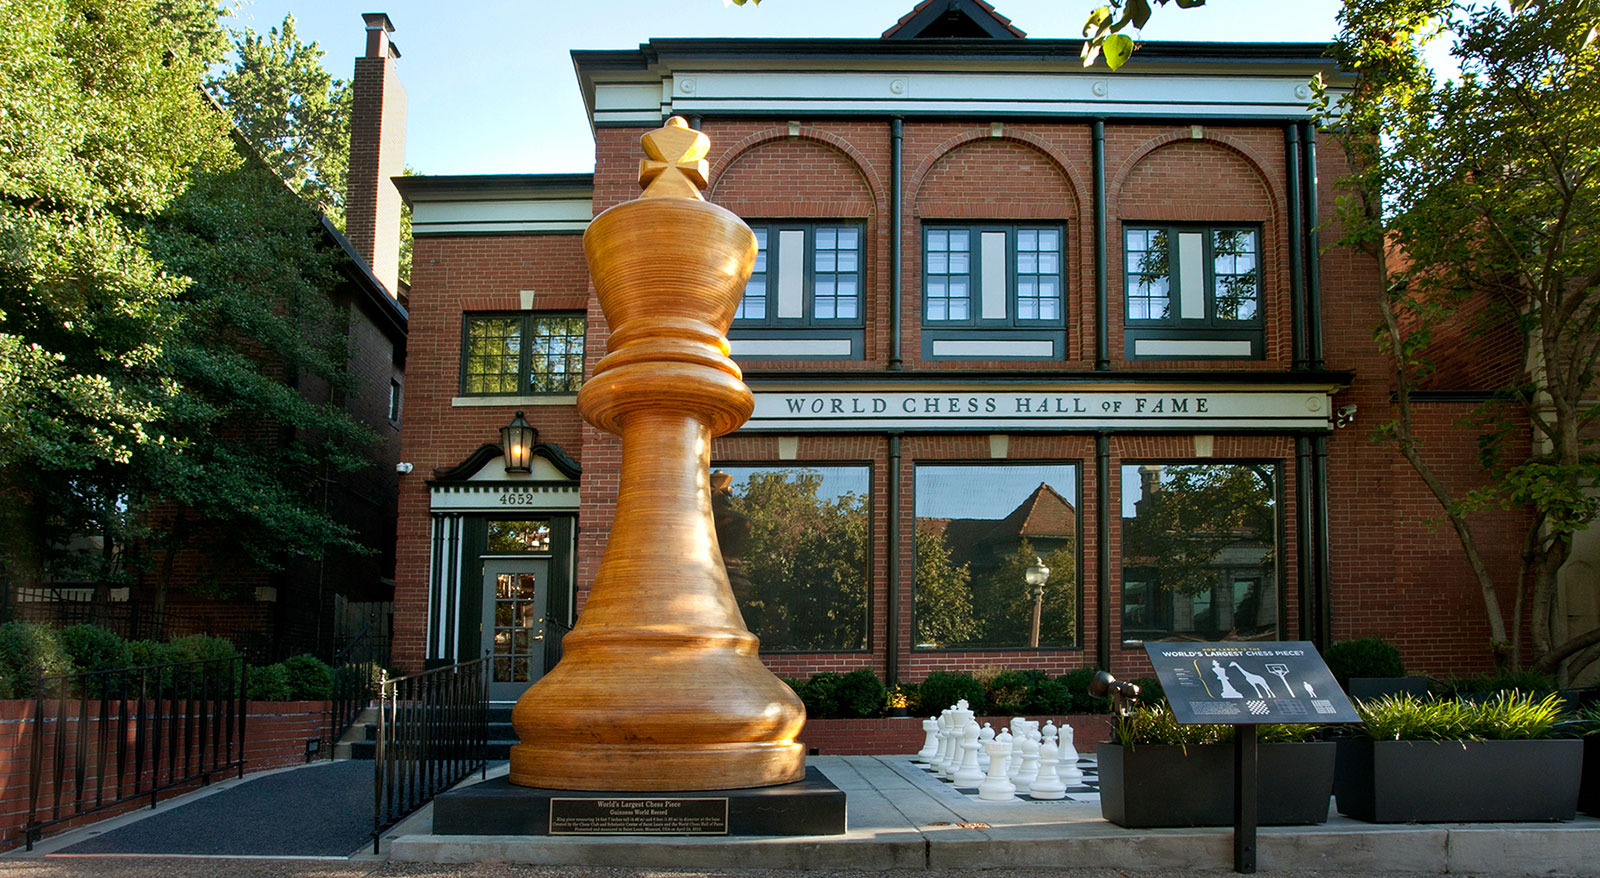 World Chess Hall of Fame building exterior and World's Largest Chess Piece